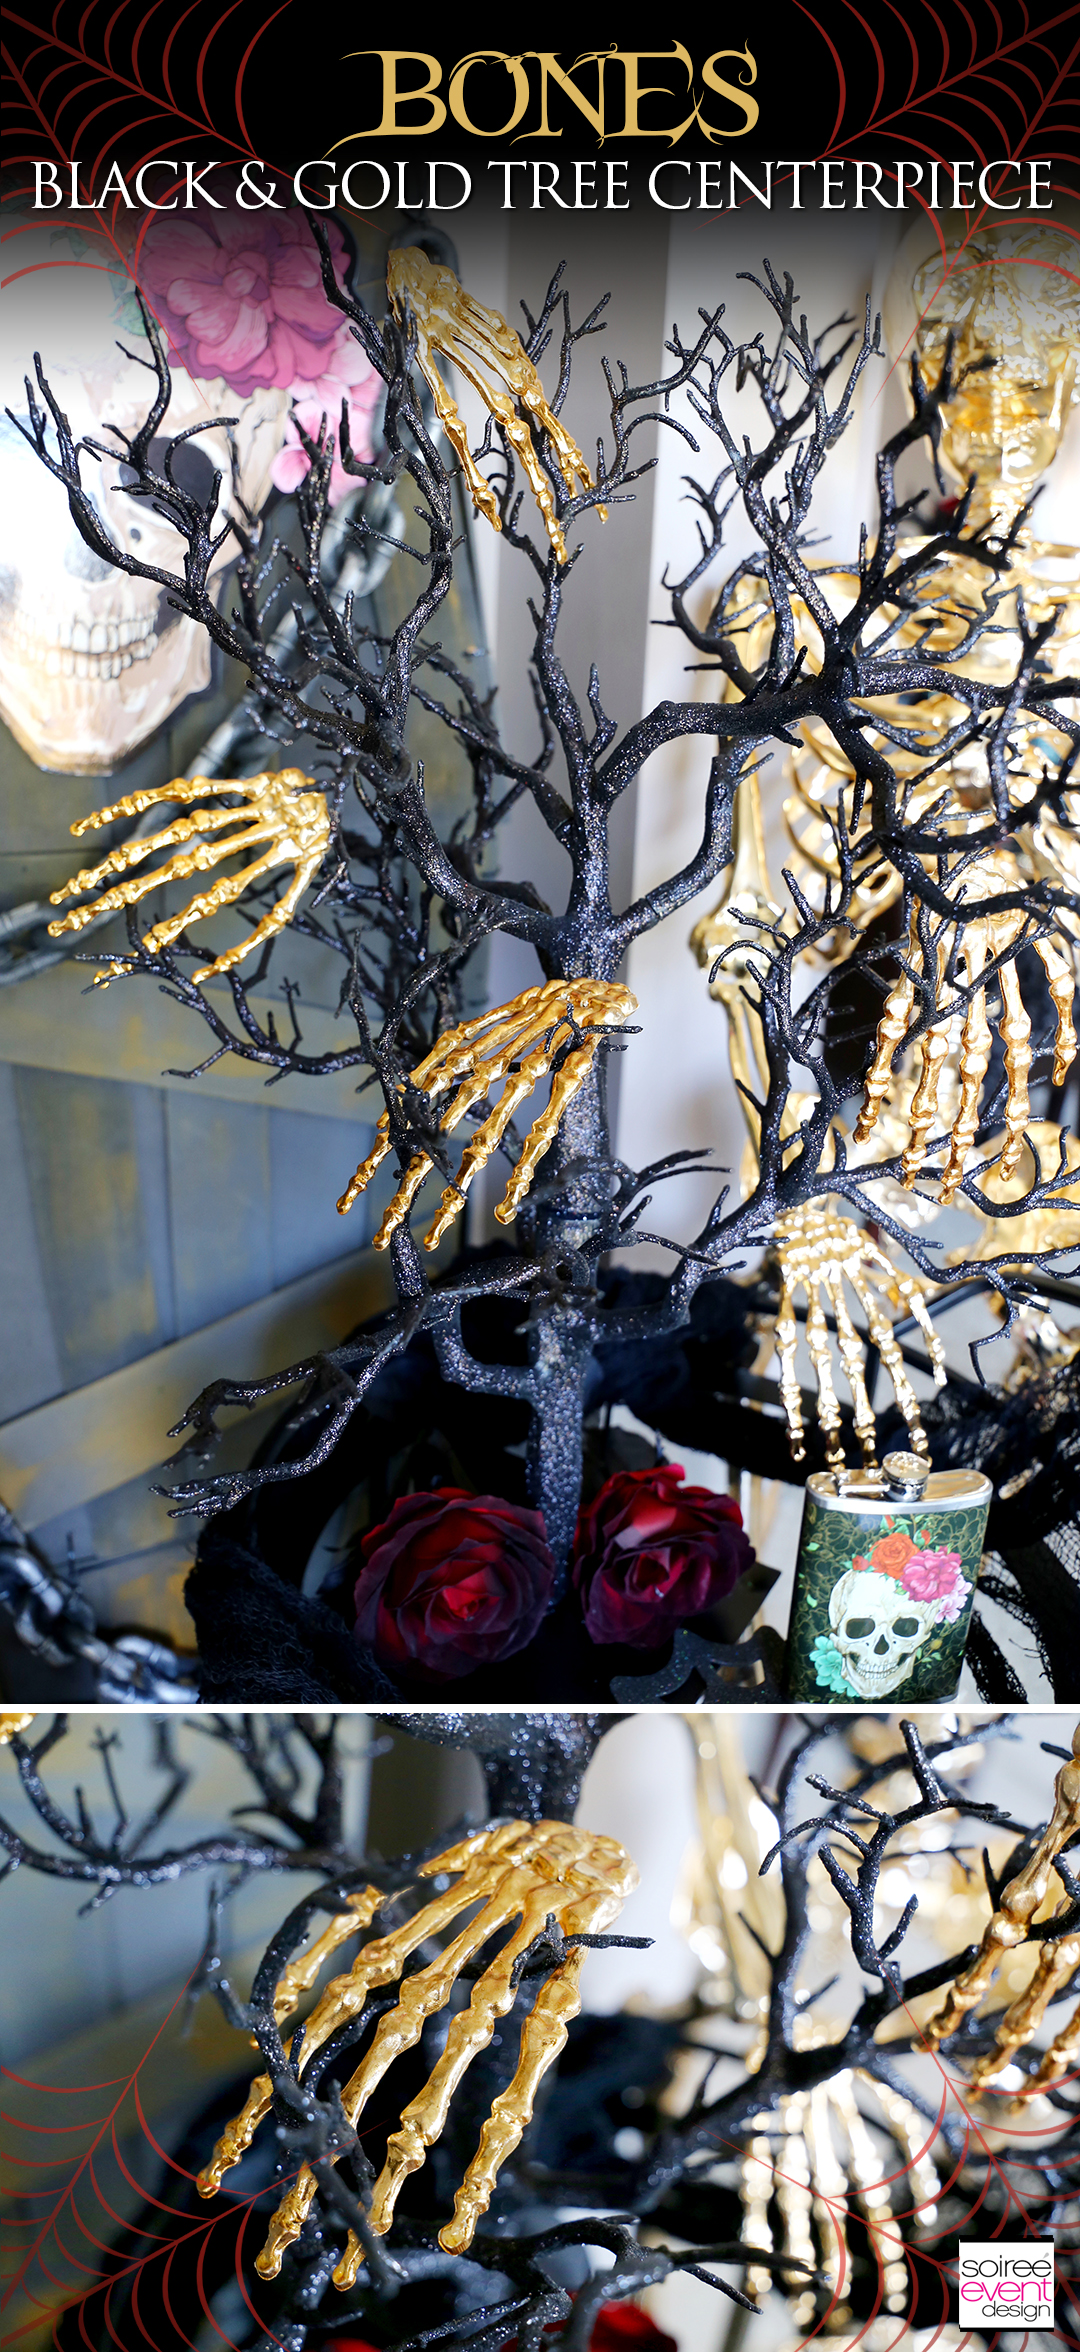 Day of the Dead Entryway - Bones Black and Gold Tree